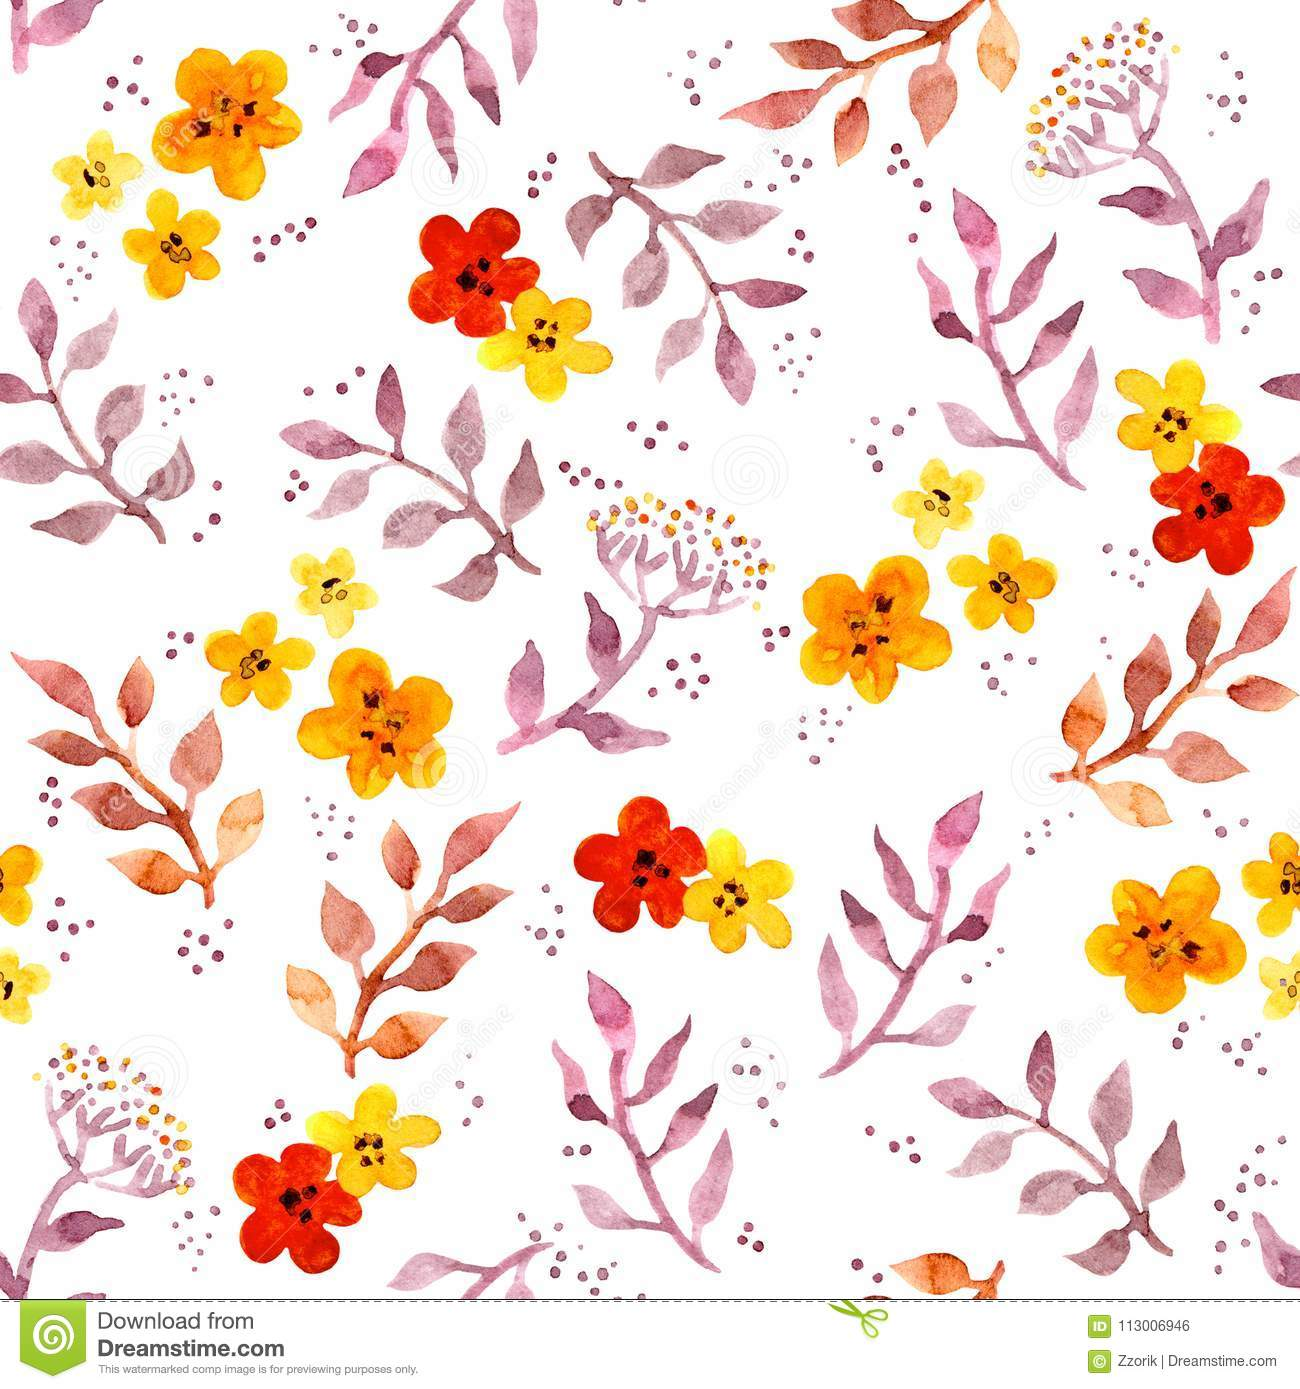 Seamless Fantasy Floral Background With Cute Flowers Watercolor